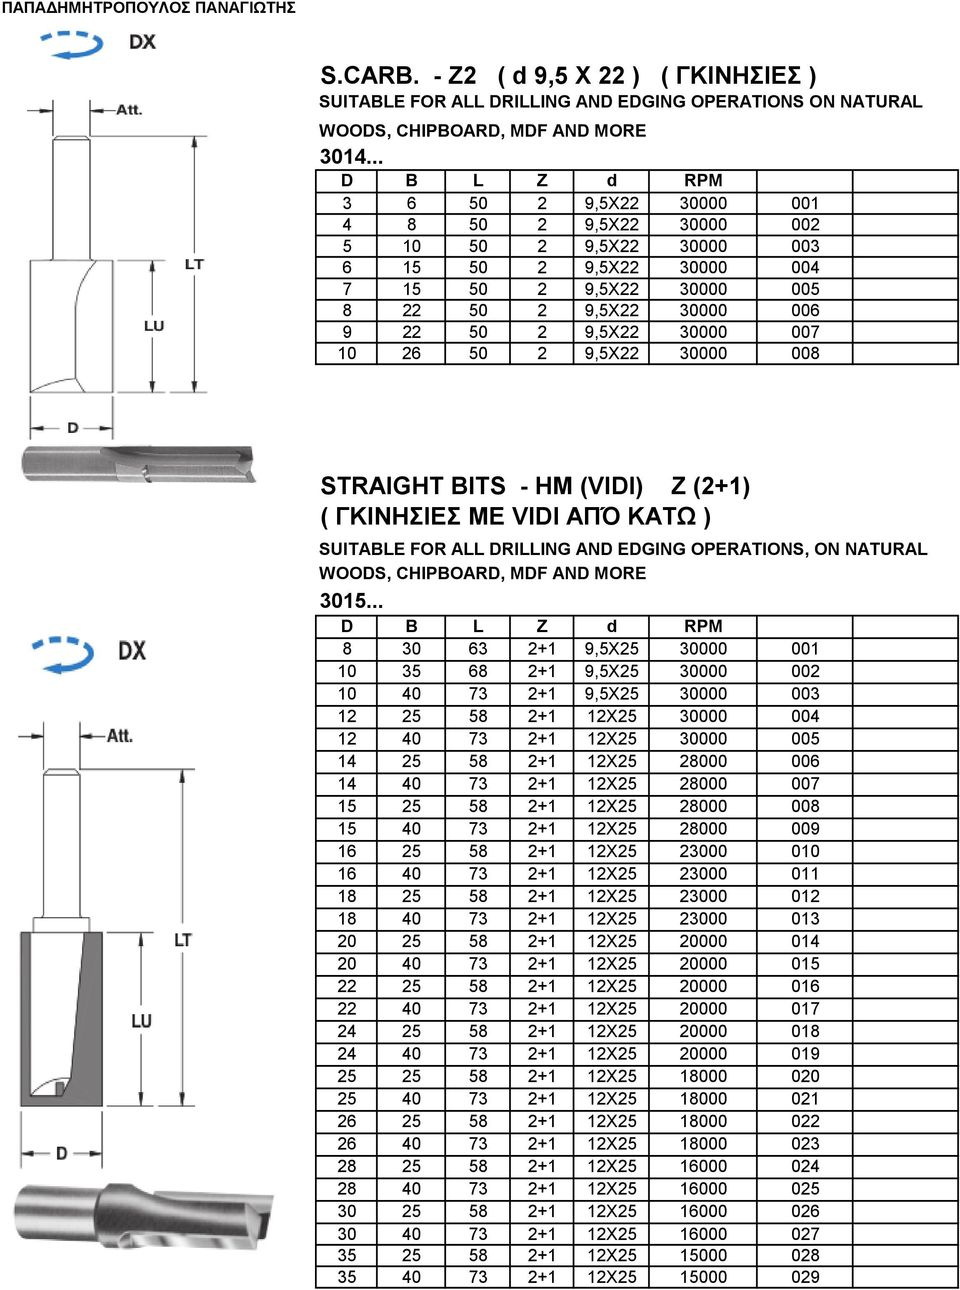 007 10 26 50 2 9,5X22 30000 008 STRAIGHT BITS - HM (VIDI) Z (2+1) ( ΓΚΙΝΗΣΙΕΣ ΜΕ VIDI ΑΠΌ ΚΑΤΩ ) SUITABLE FOR ALL DRILLING AND EDGING OPERATIONS, ON NATURAL WOODS, CHIPBOARD, MDF AND MORE 3015.